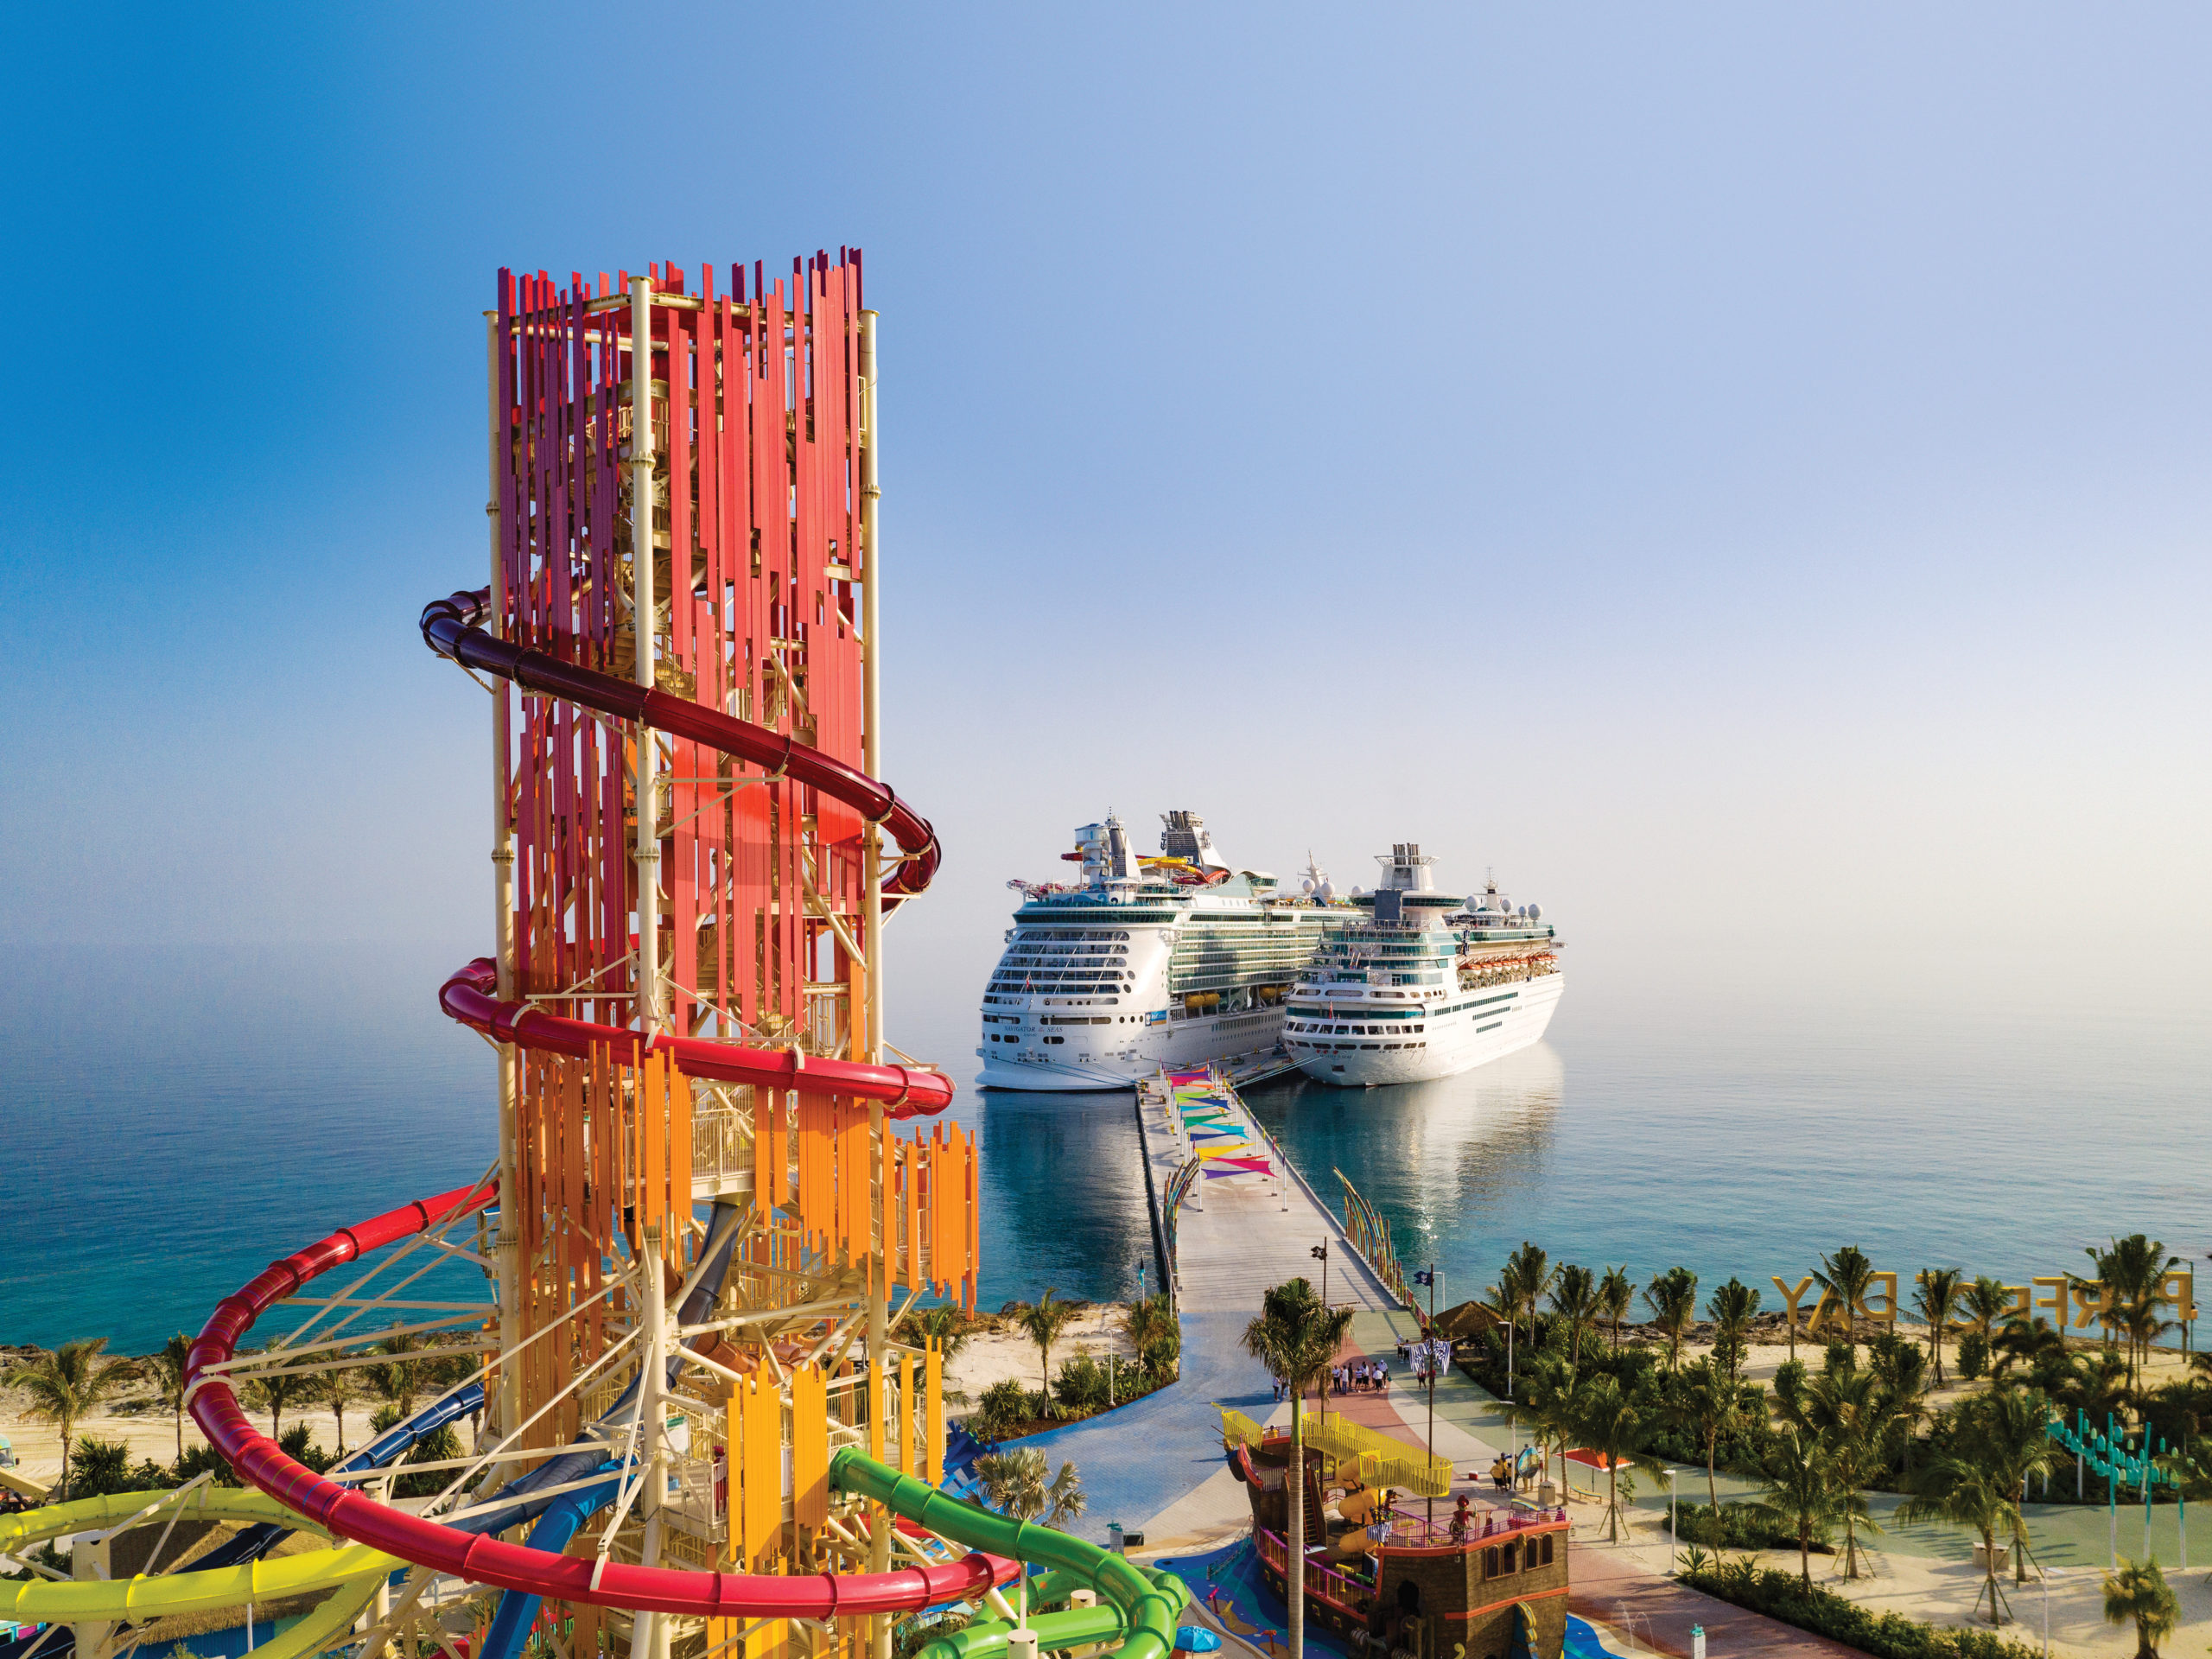 Oasis of the seas Cococay